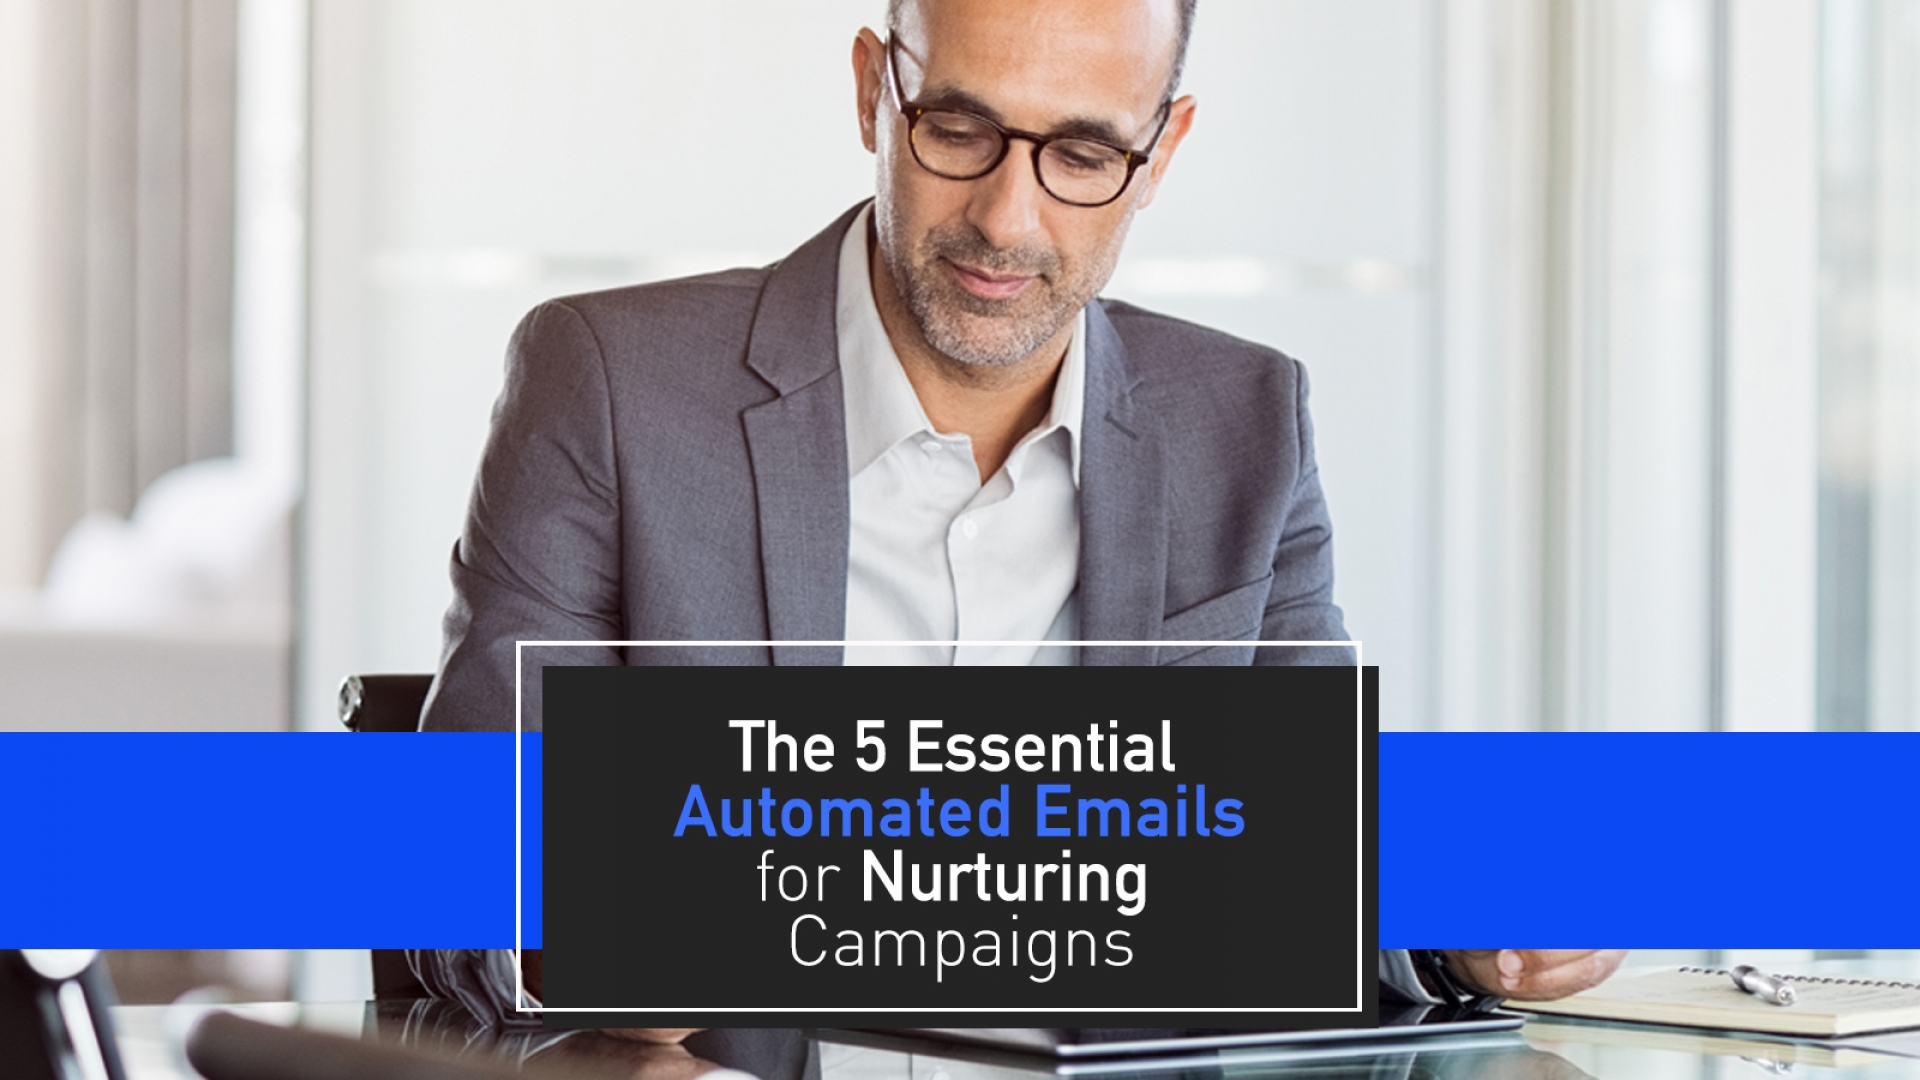 The 5 Essential Automated Emails for Nurturing Campaigns - New Age Explorer-Digital Marketing Agency